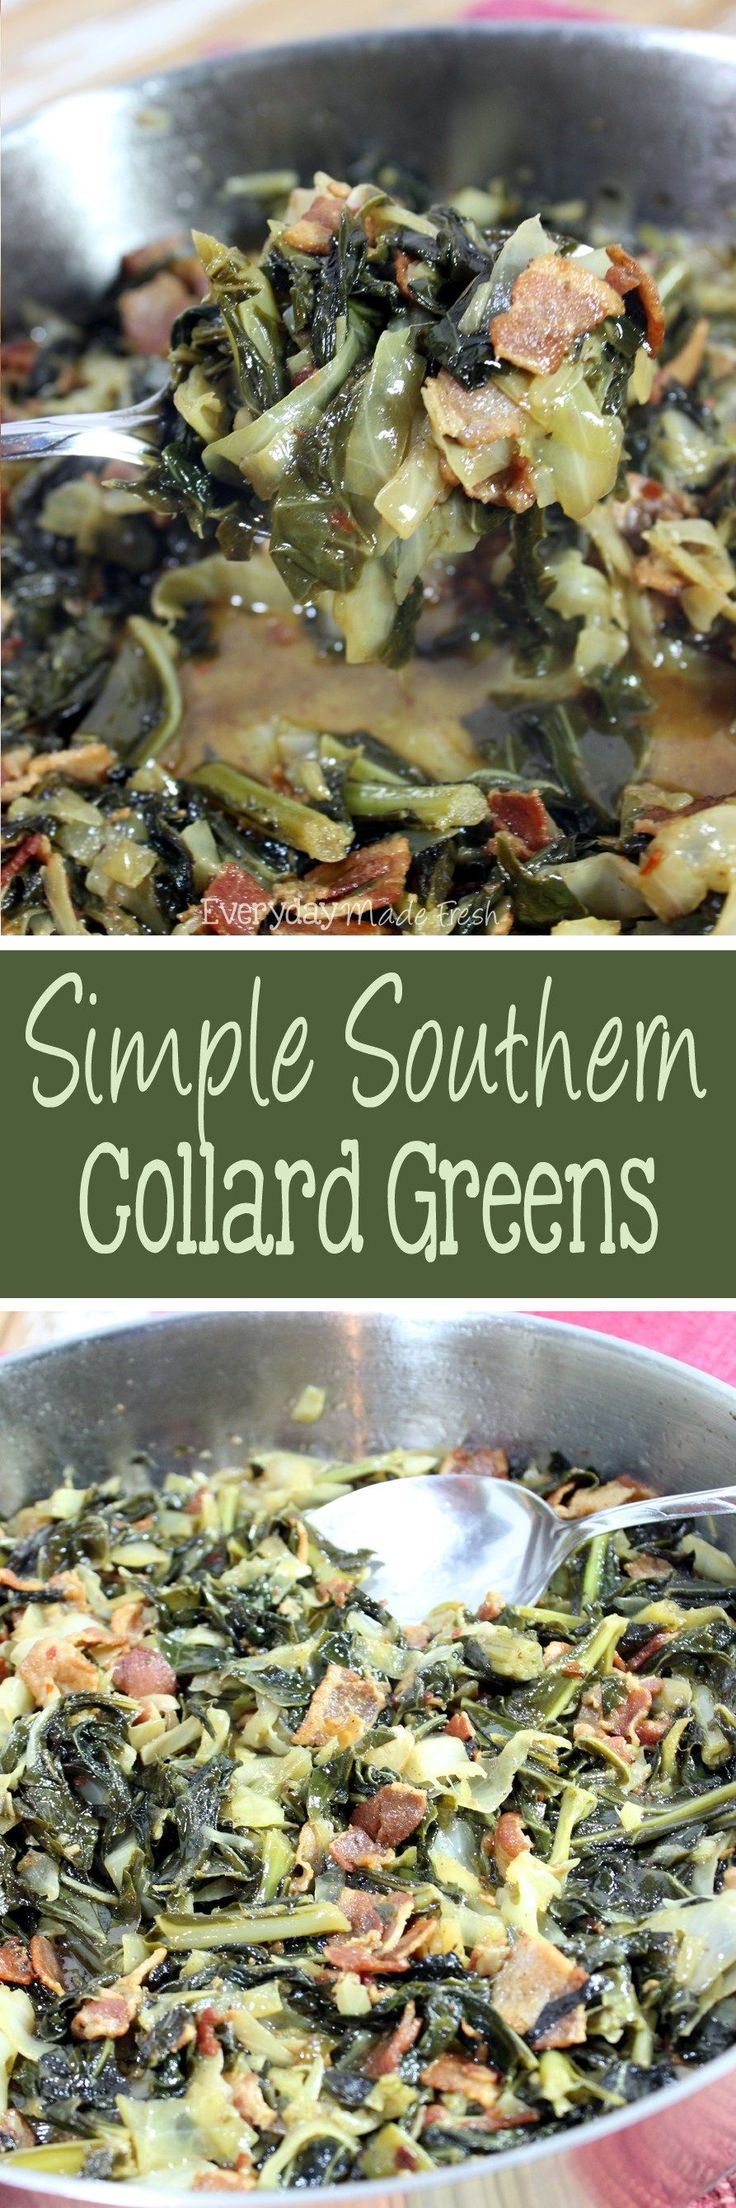 If I can make collard greens, you can too! Simple Southern Collard Greens are loaded with cabbage, thick-cut bacon, and spiced up just right. | EverydayMadeFresh.com There's a simple reason why most diets fail-- they do not produce results fast enough. It's no fun to eat small portions of food that don't satisfy our hunger cravings. It's no fun to go to the gym day after day-- and when you are doing all of this and the scale is barely budging, it can be incredibly discouraging. It can make…